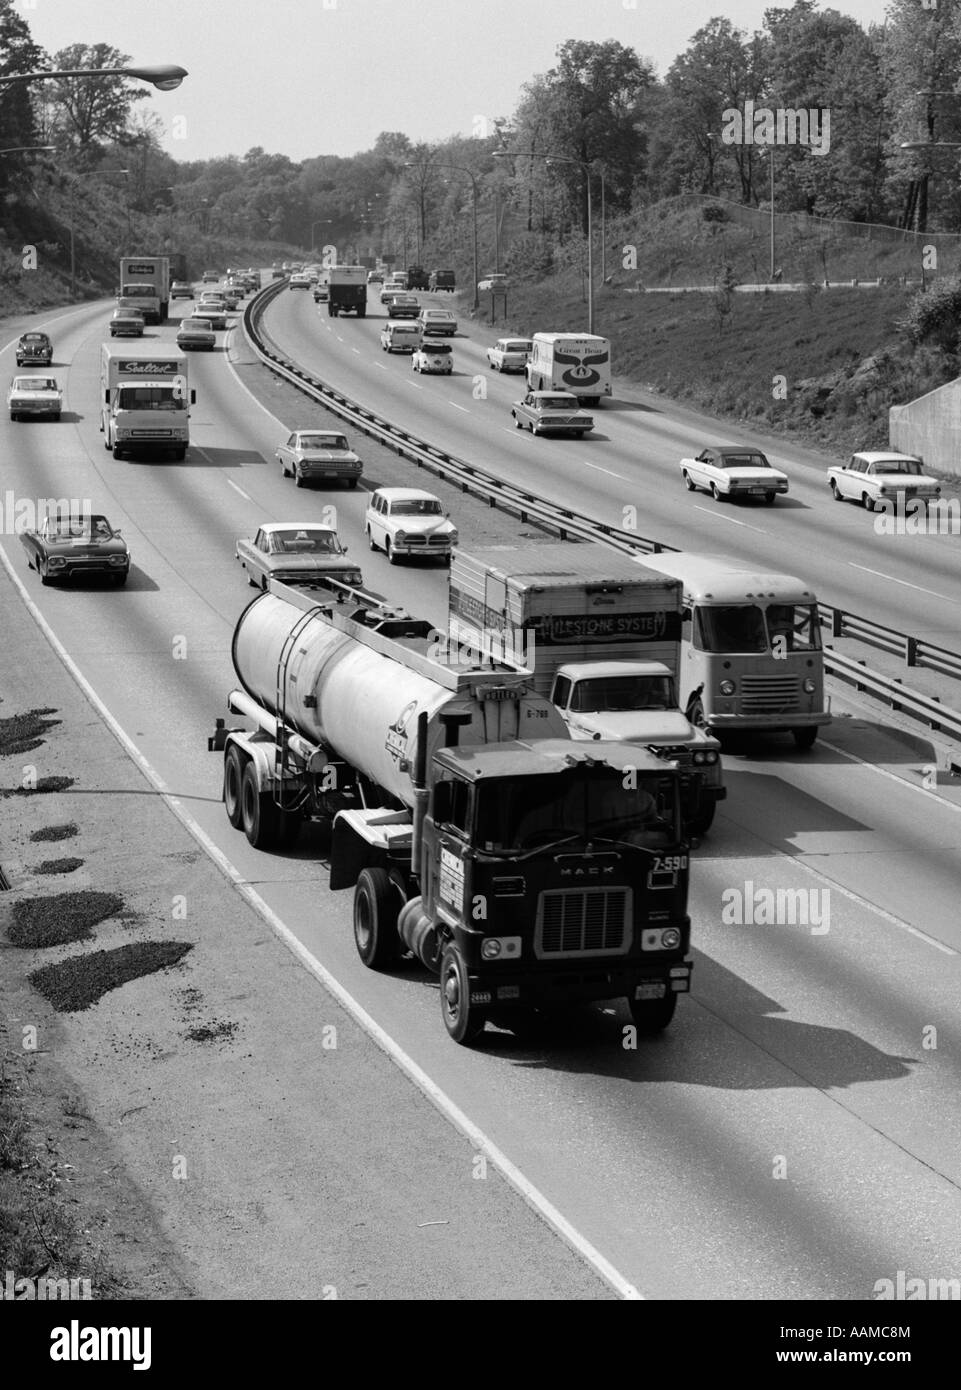 1960s TANKER TRUCK TRAVELING ON BUSY EXPRESSWAY - Stock Image